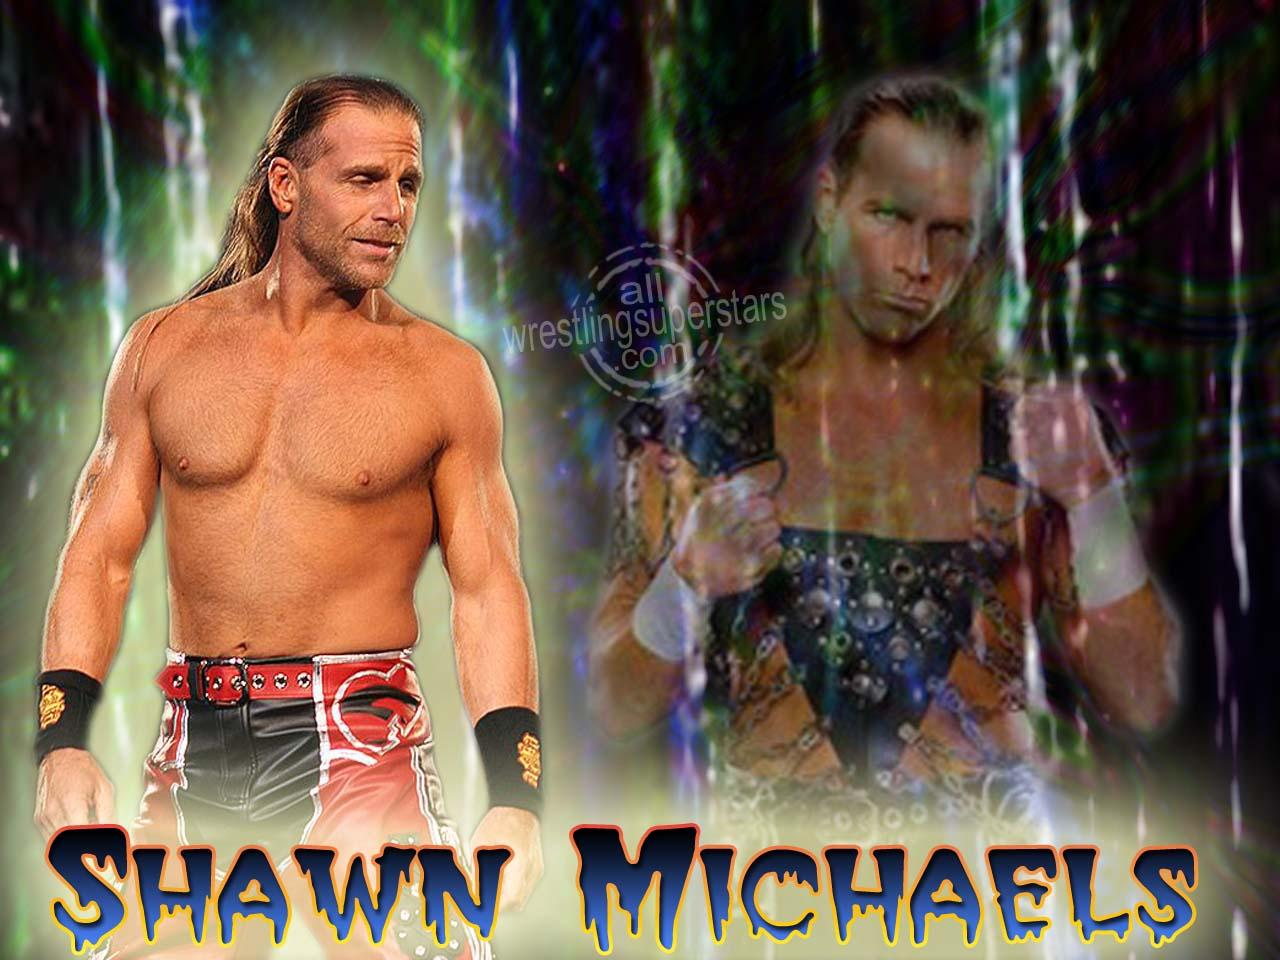 http://3.bp.blogspot.com/-l5ZgLyjgUsU/TkJLvjL0GDI/AAAAAAAAFQg/Y5DM9SQkJWE/s1600/wwe-wallpapers-shawn-michaels-10.jpg